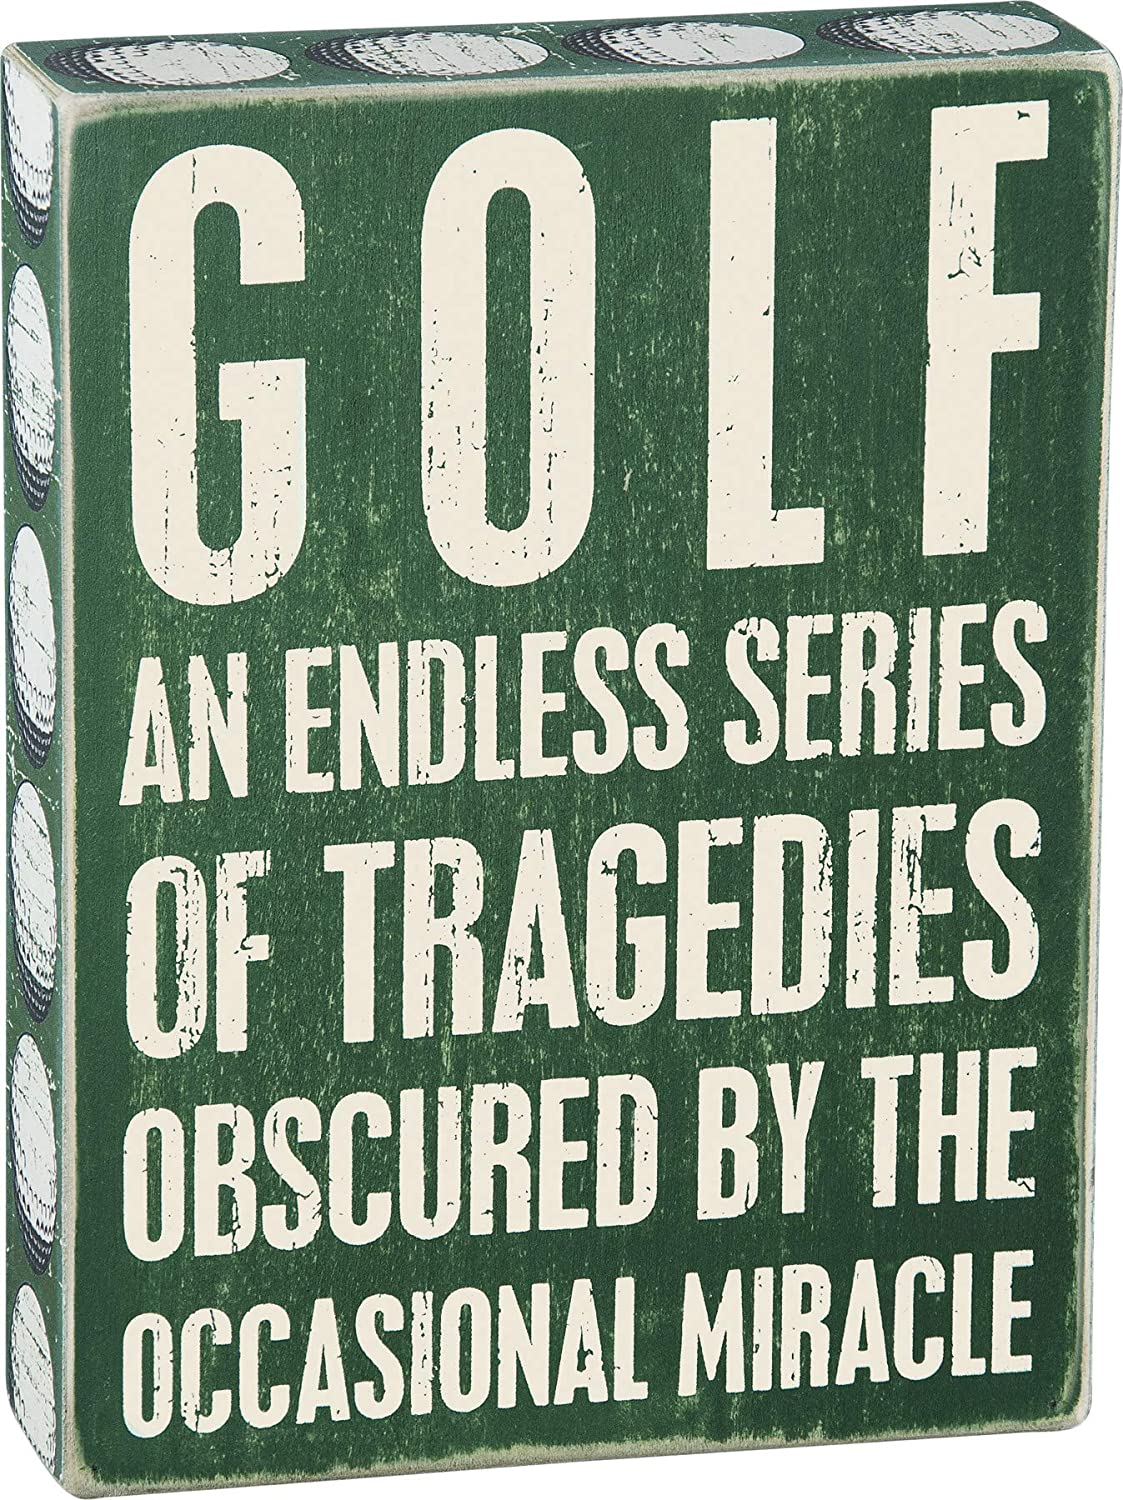 Primitives by Kathy 24687 Green Ball Trimmed Box Sign, 6 x 8-Inches, Golf Tragedies